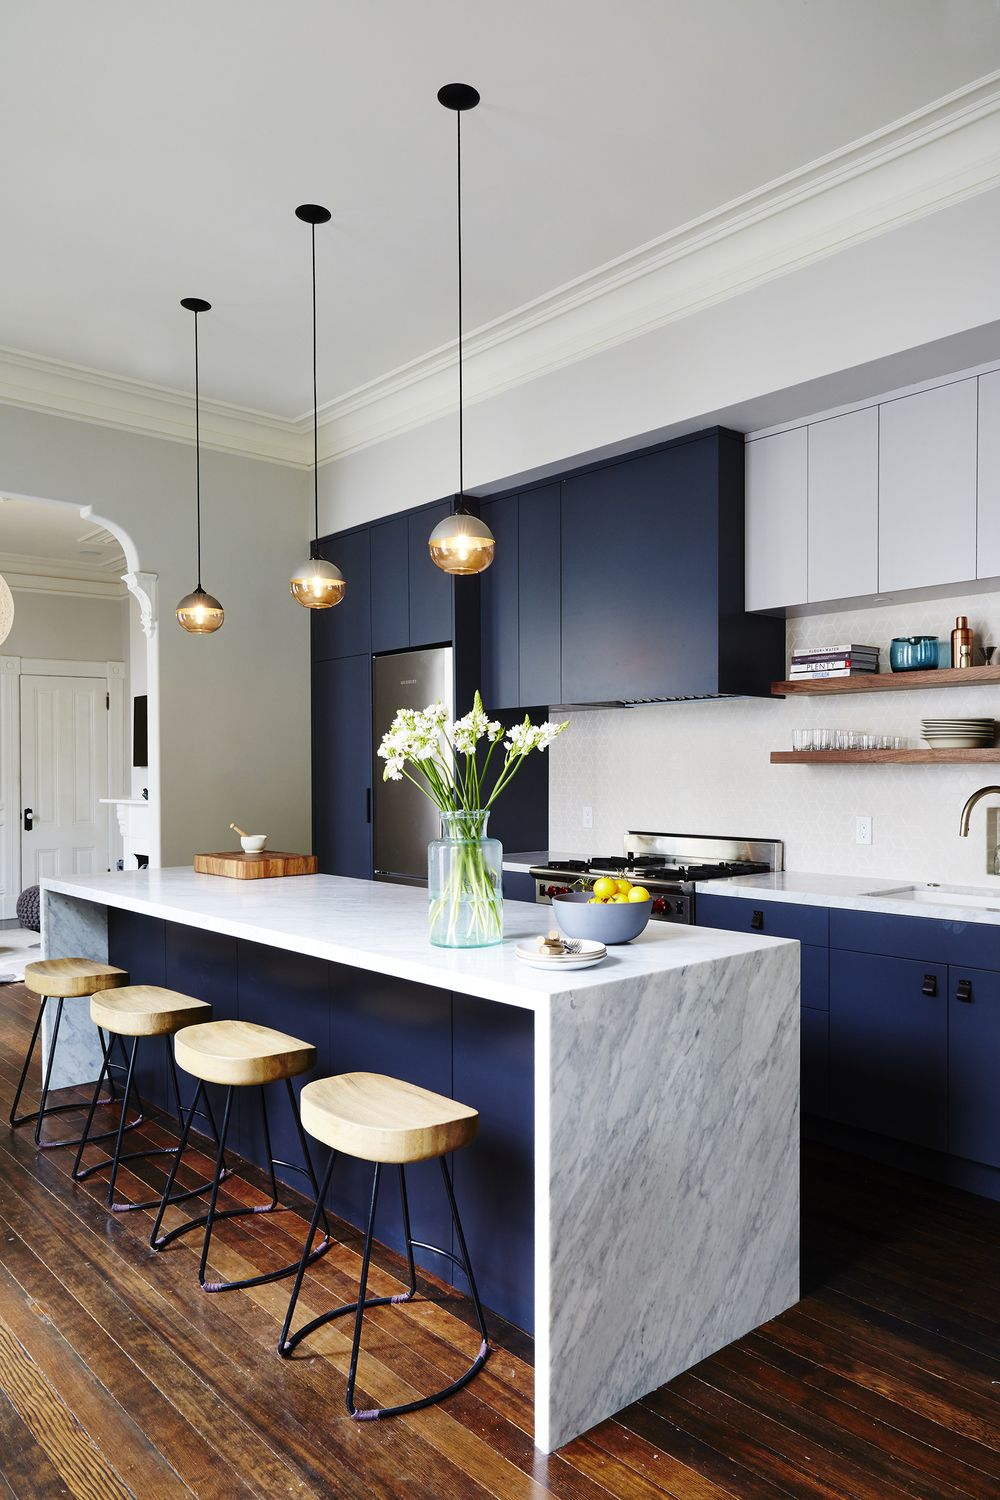 Kitchen Blues Kitchen interior, Kitchen design, Modern